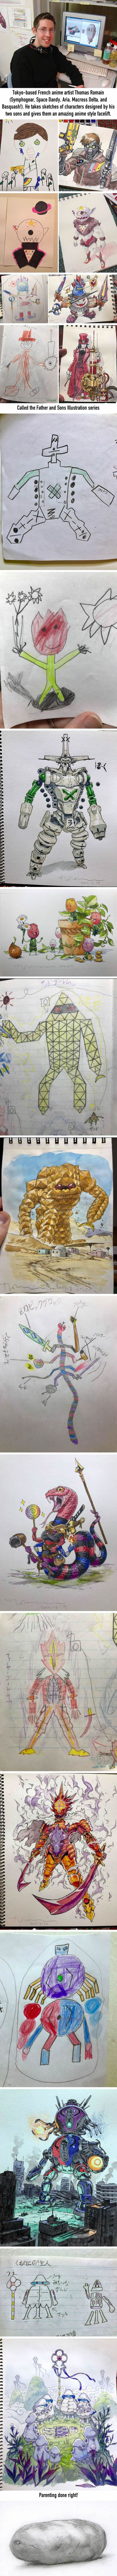 Symphogear Art Designer Turns His Sons' Sketches Into Badass Characters